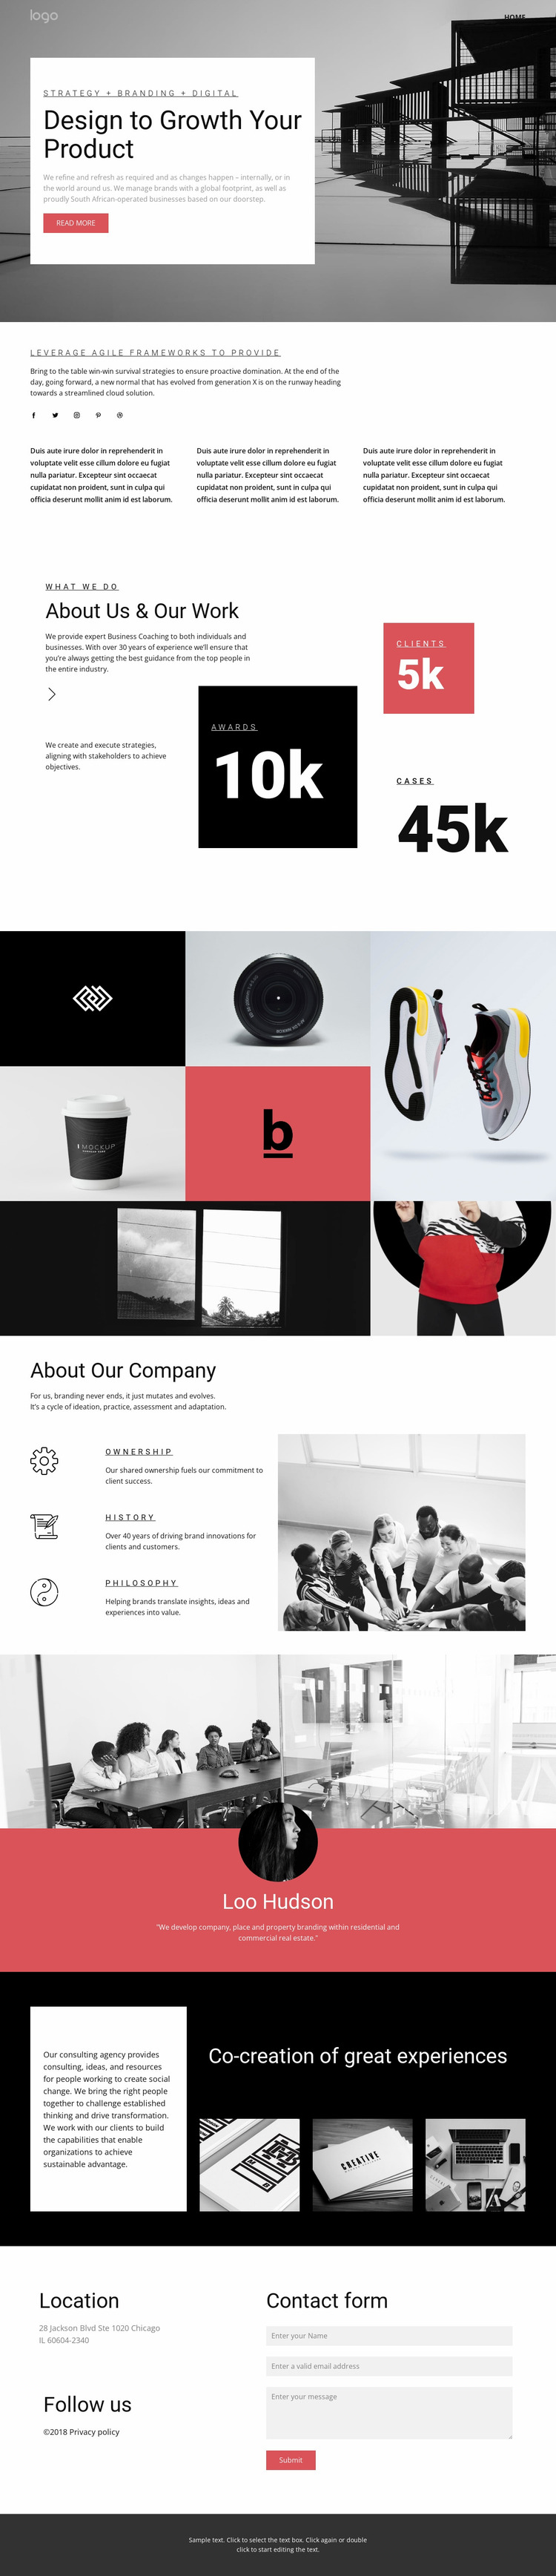 Business growth agency Website Mockup